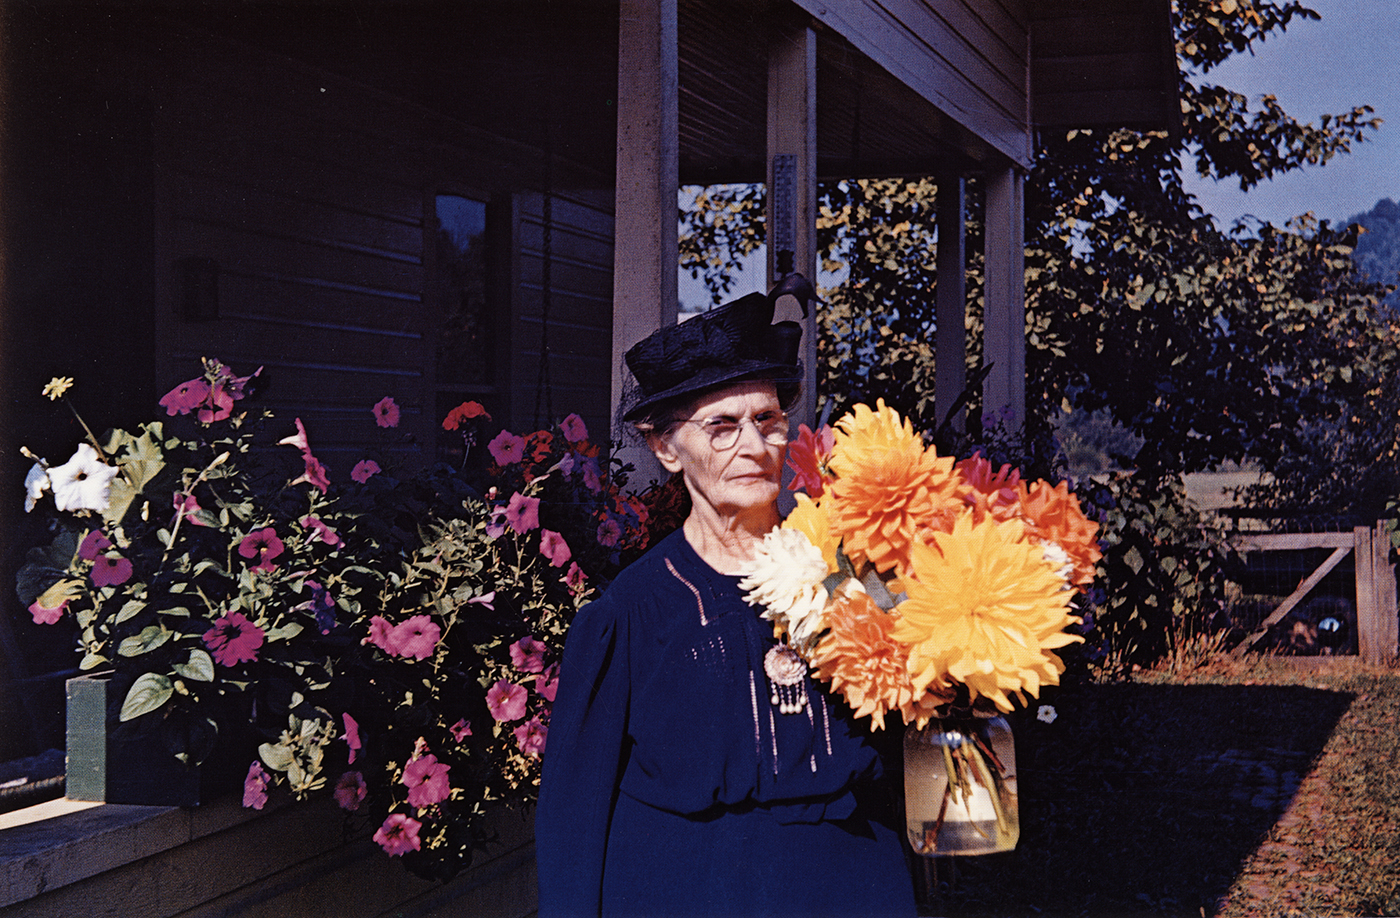 Guy Stricherz  Americans in Kodachrome 1945-1965  Dahlias for Church, Fraziers Bottom, West Virginia,  1946  Photographer: Harold H. Frazier  16 x 20 inches Dye Transfer Print